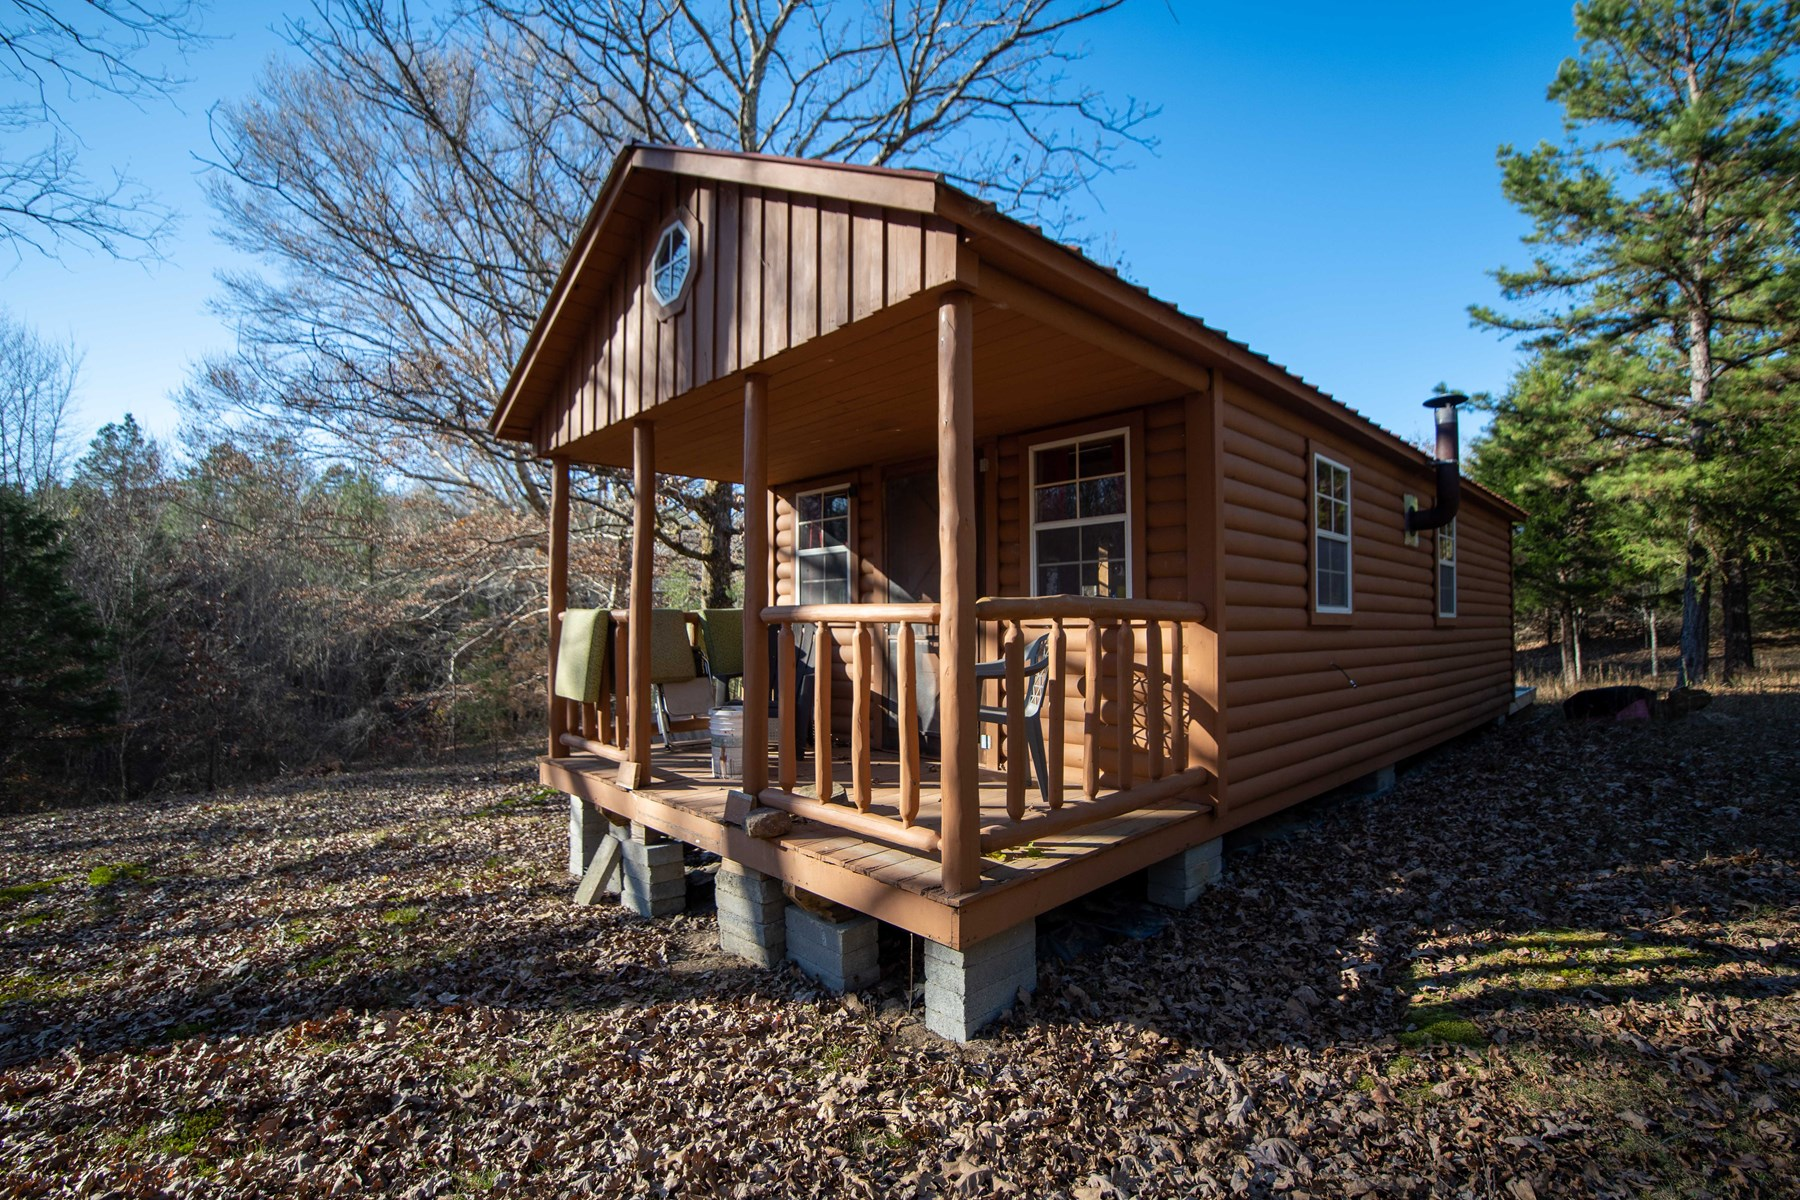 40 WAYNESBORO TN ACRE FOR SALE TIMBER WELL SEPTIC CABIN DEER